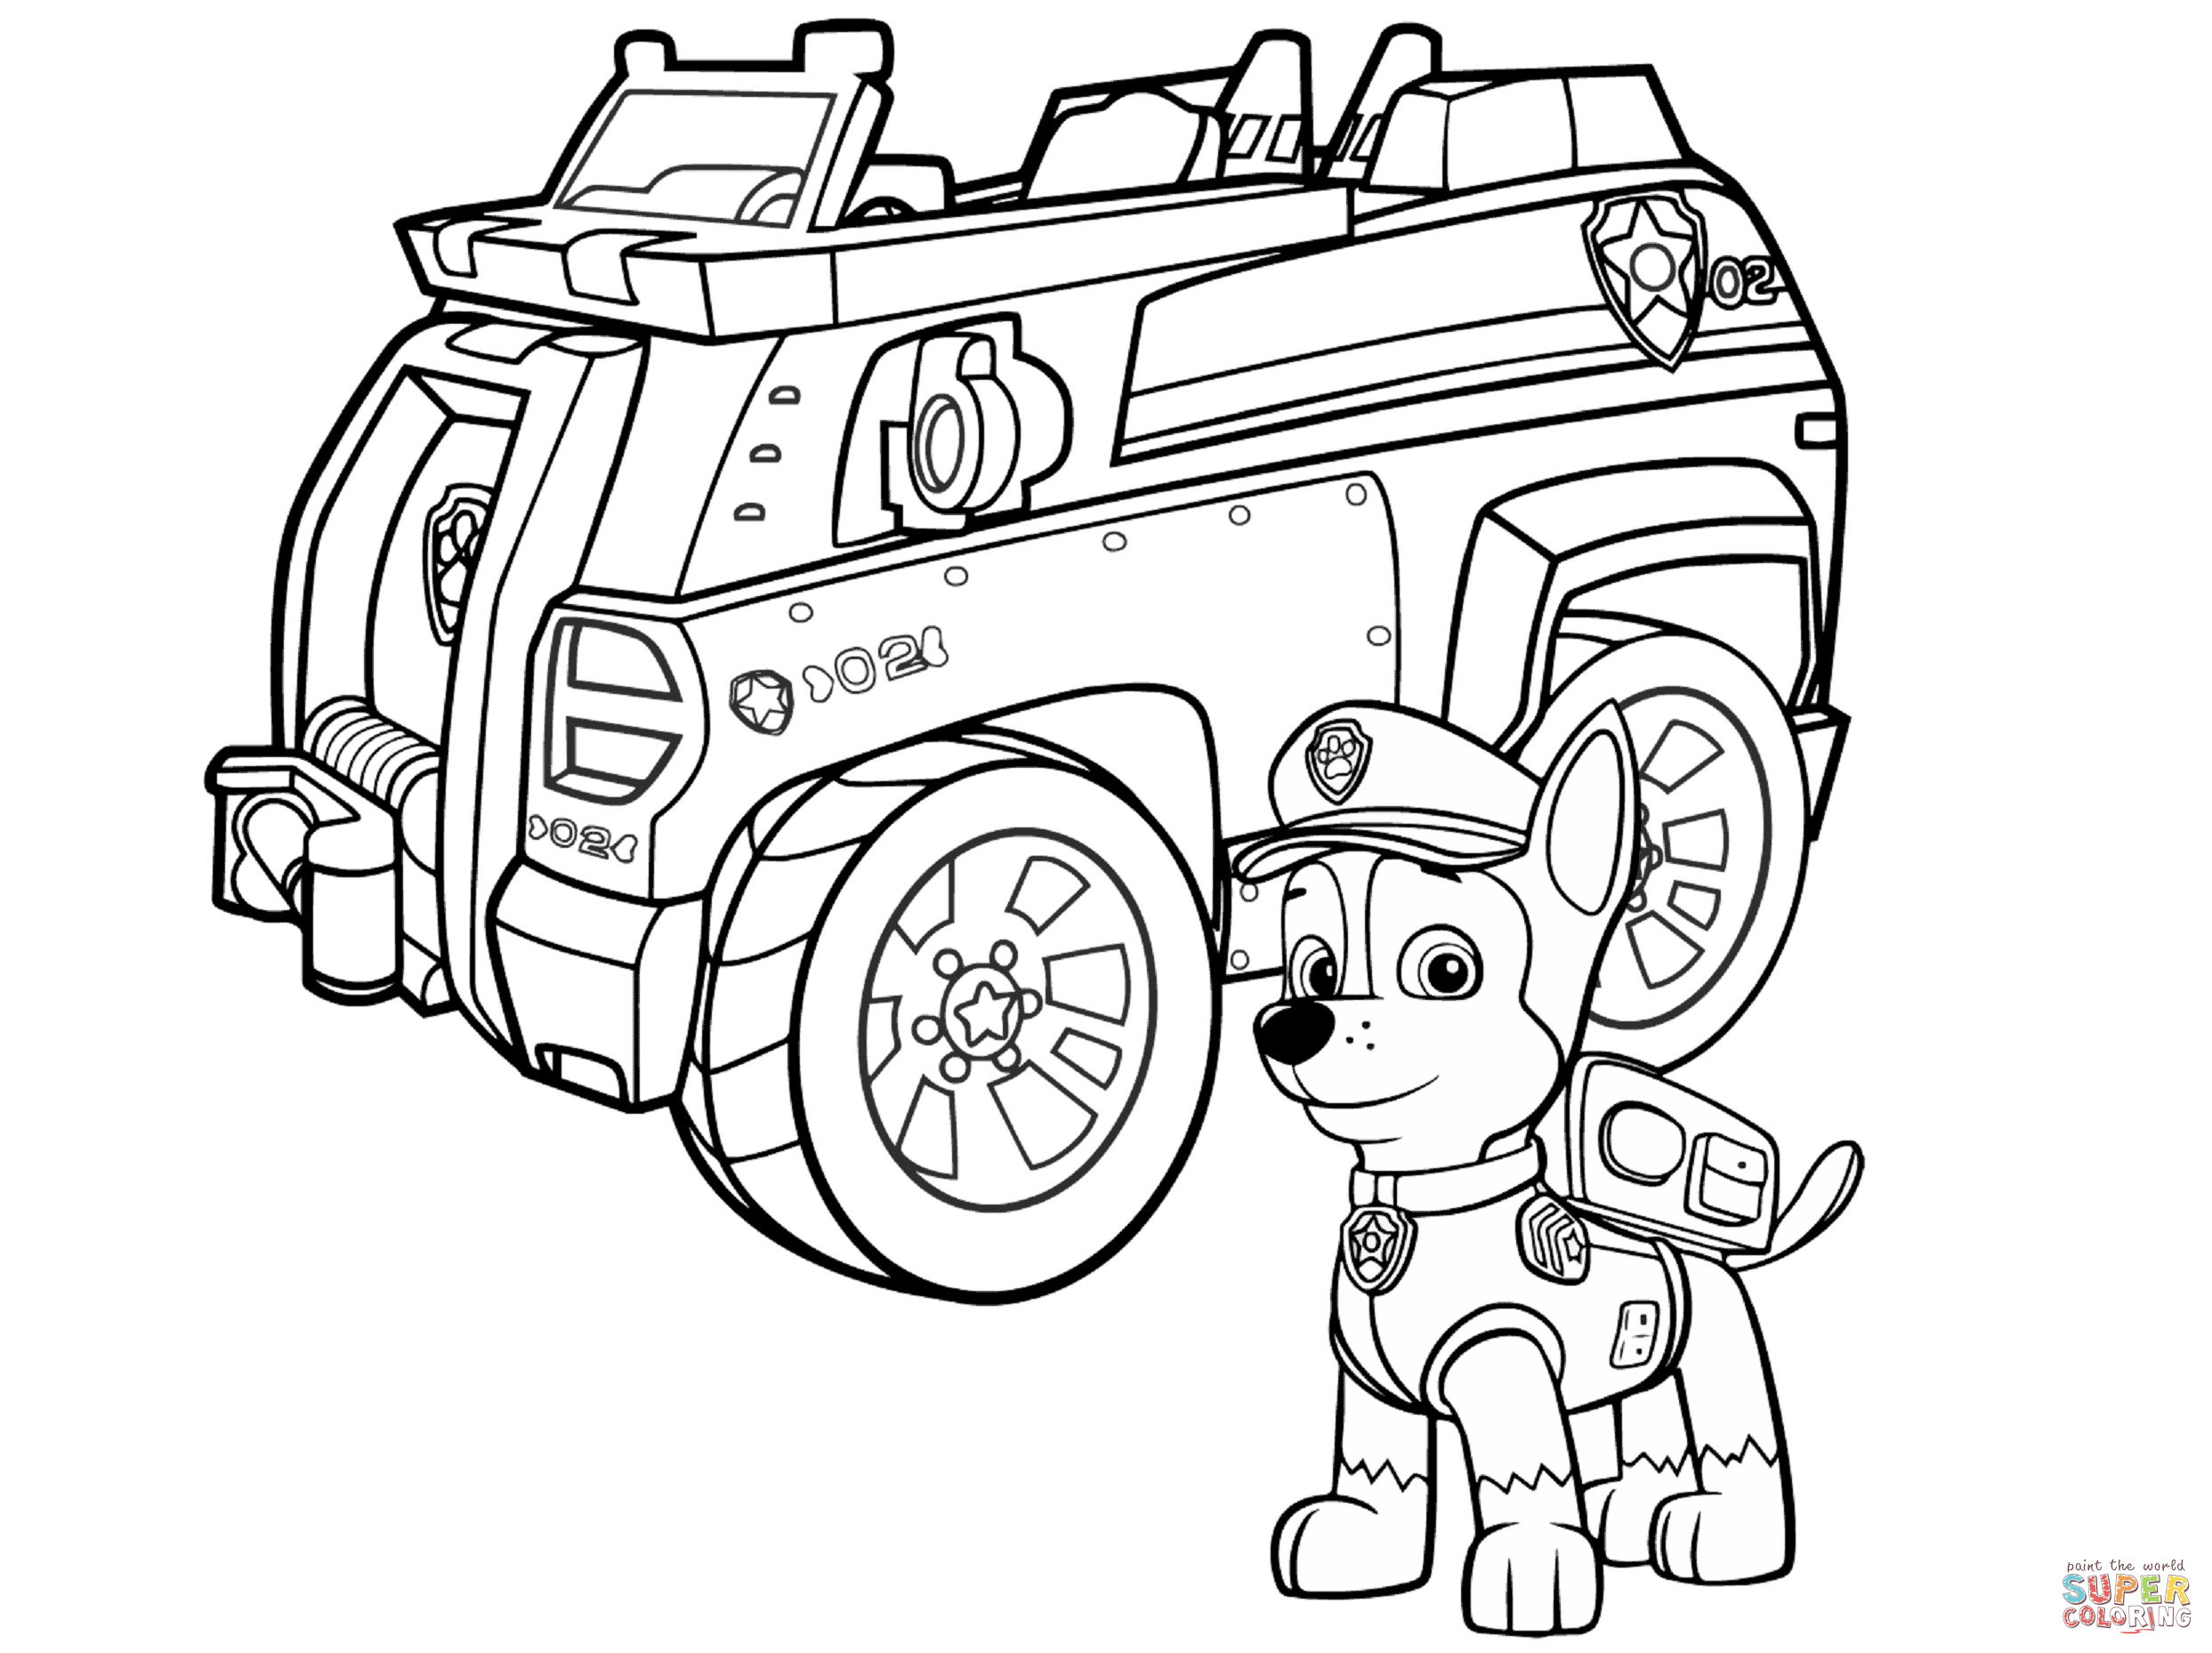 paw patrol vehicles coloring pages free nick jr paw patrol coloring pages pages coloring paw patrol vehicles